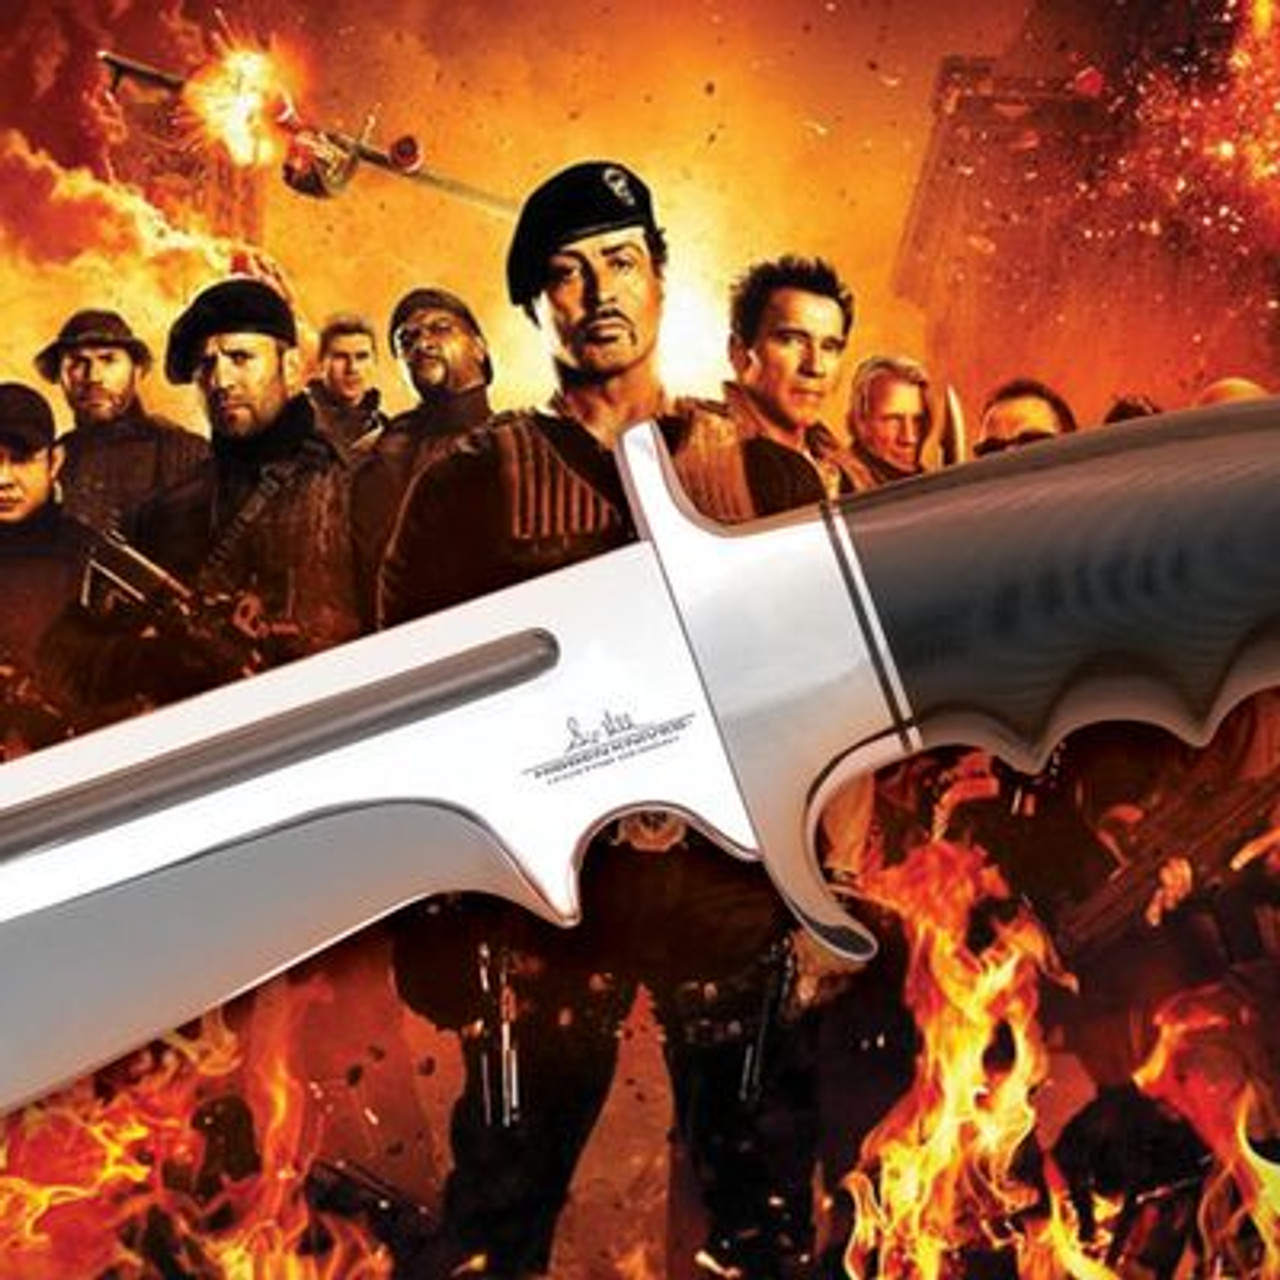 Gil Hibben Legionnaire Bowie from The Expendables 2 - GH5037